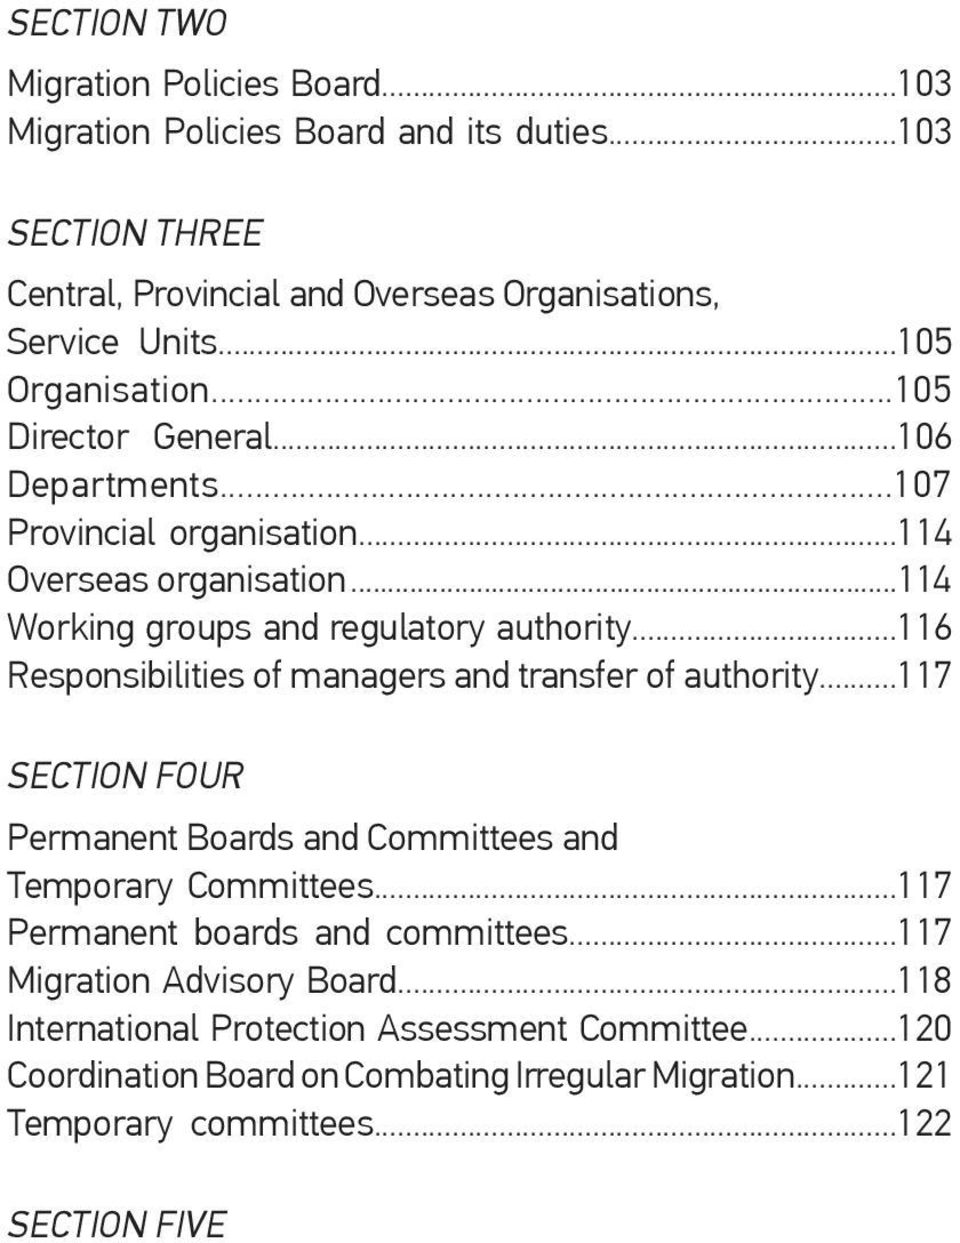 ..116 Responsibilities of managers and transfer of authority...117 SECTION FOUR Permanent Boards and Committees and Temporary Committees...117 Permanent boards and committees.